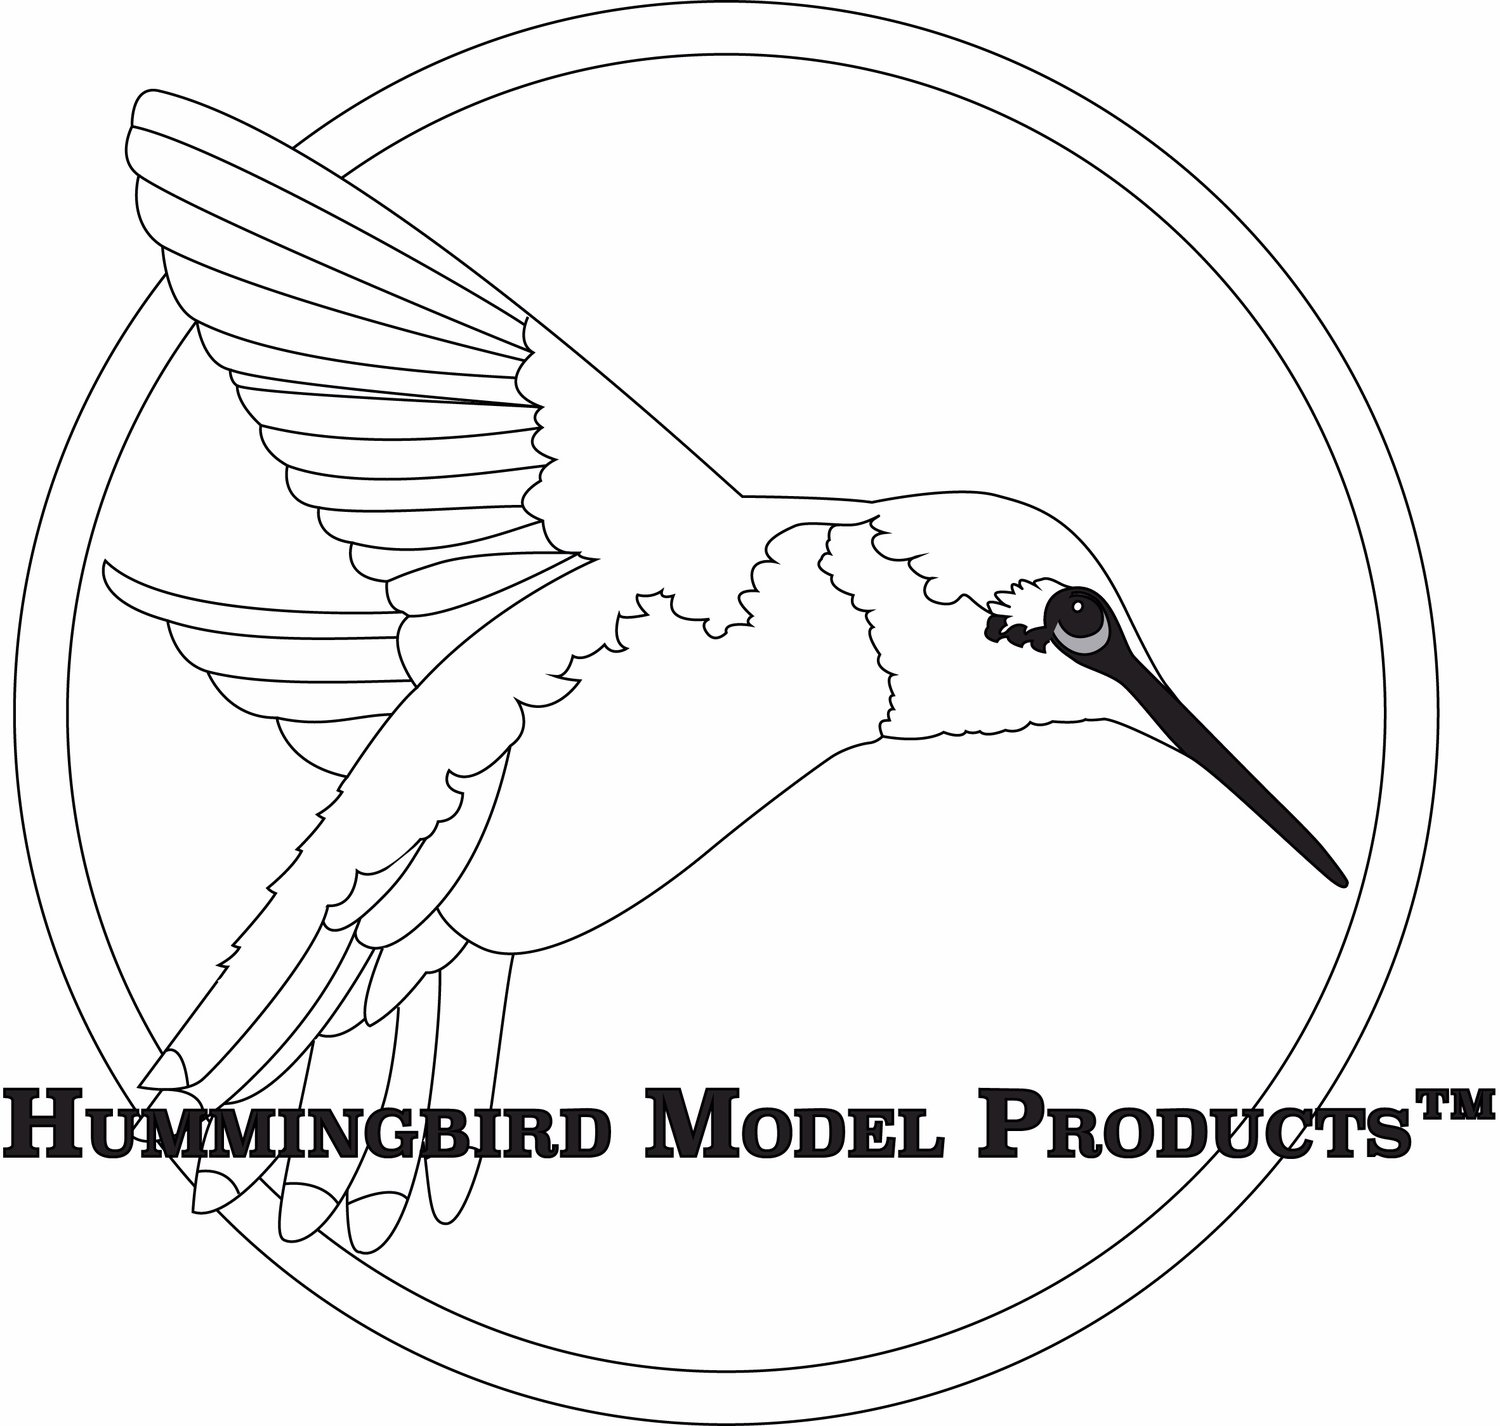 Hummingbird Model Products